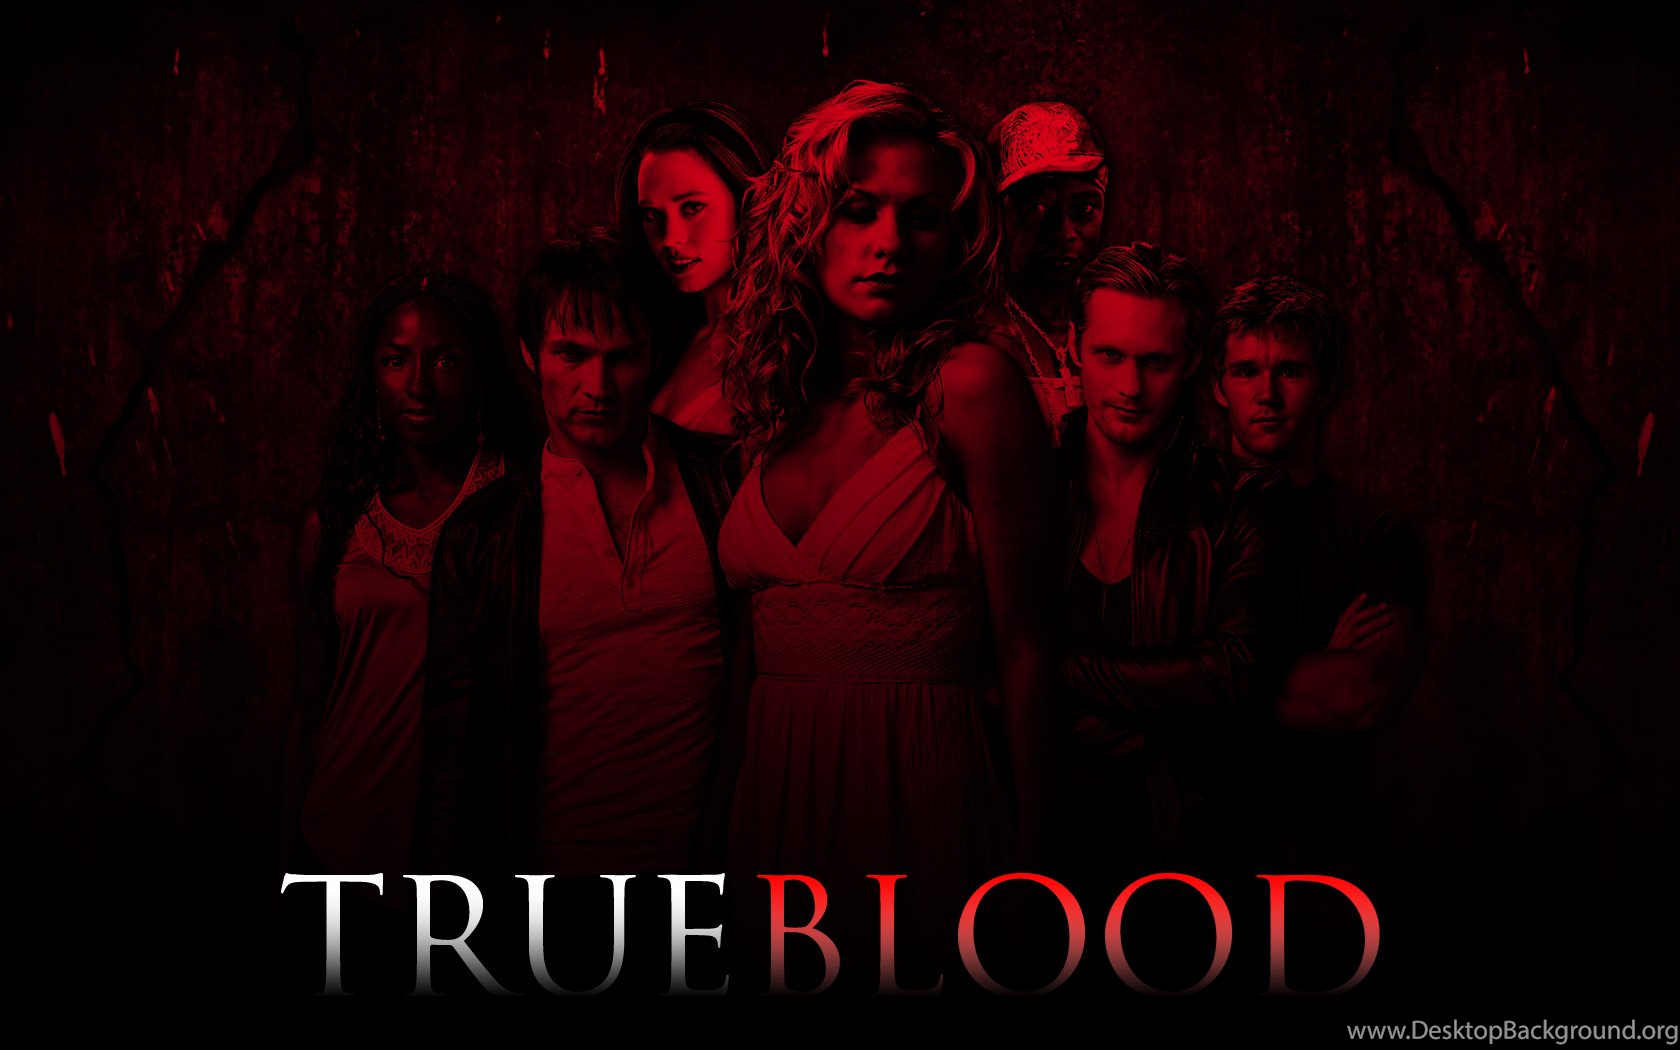 True Blood Wallpapers V2 Red By TwistedEffect On DeviantArt Desktop